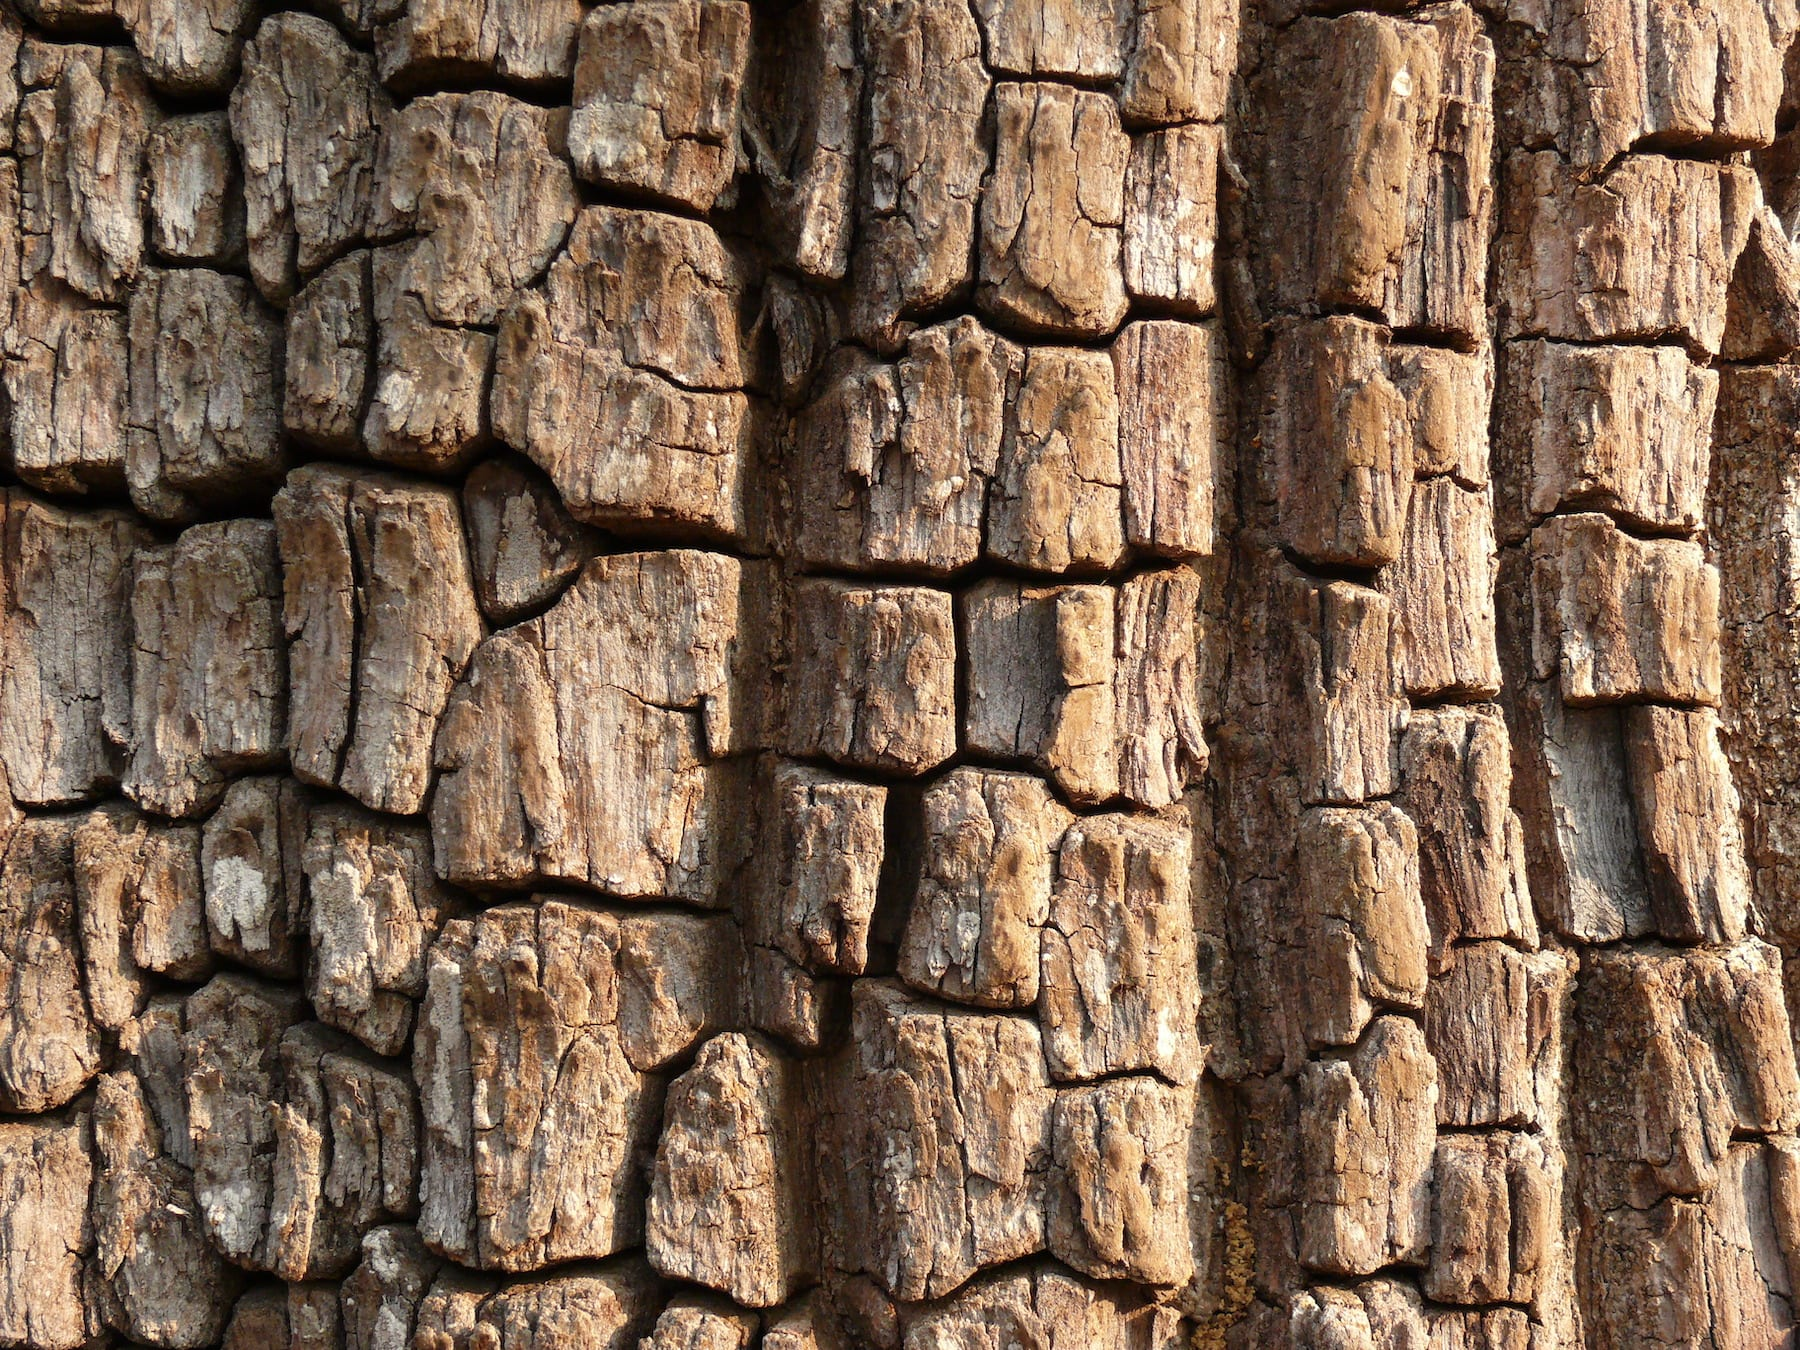 The crocodile bark tree gets its name from the characteristic pattern on its trunk that resembles a crocodile's scales.